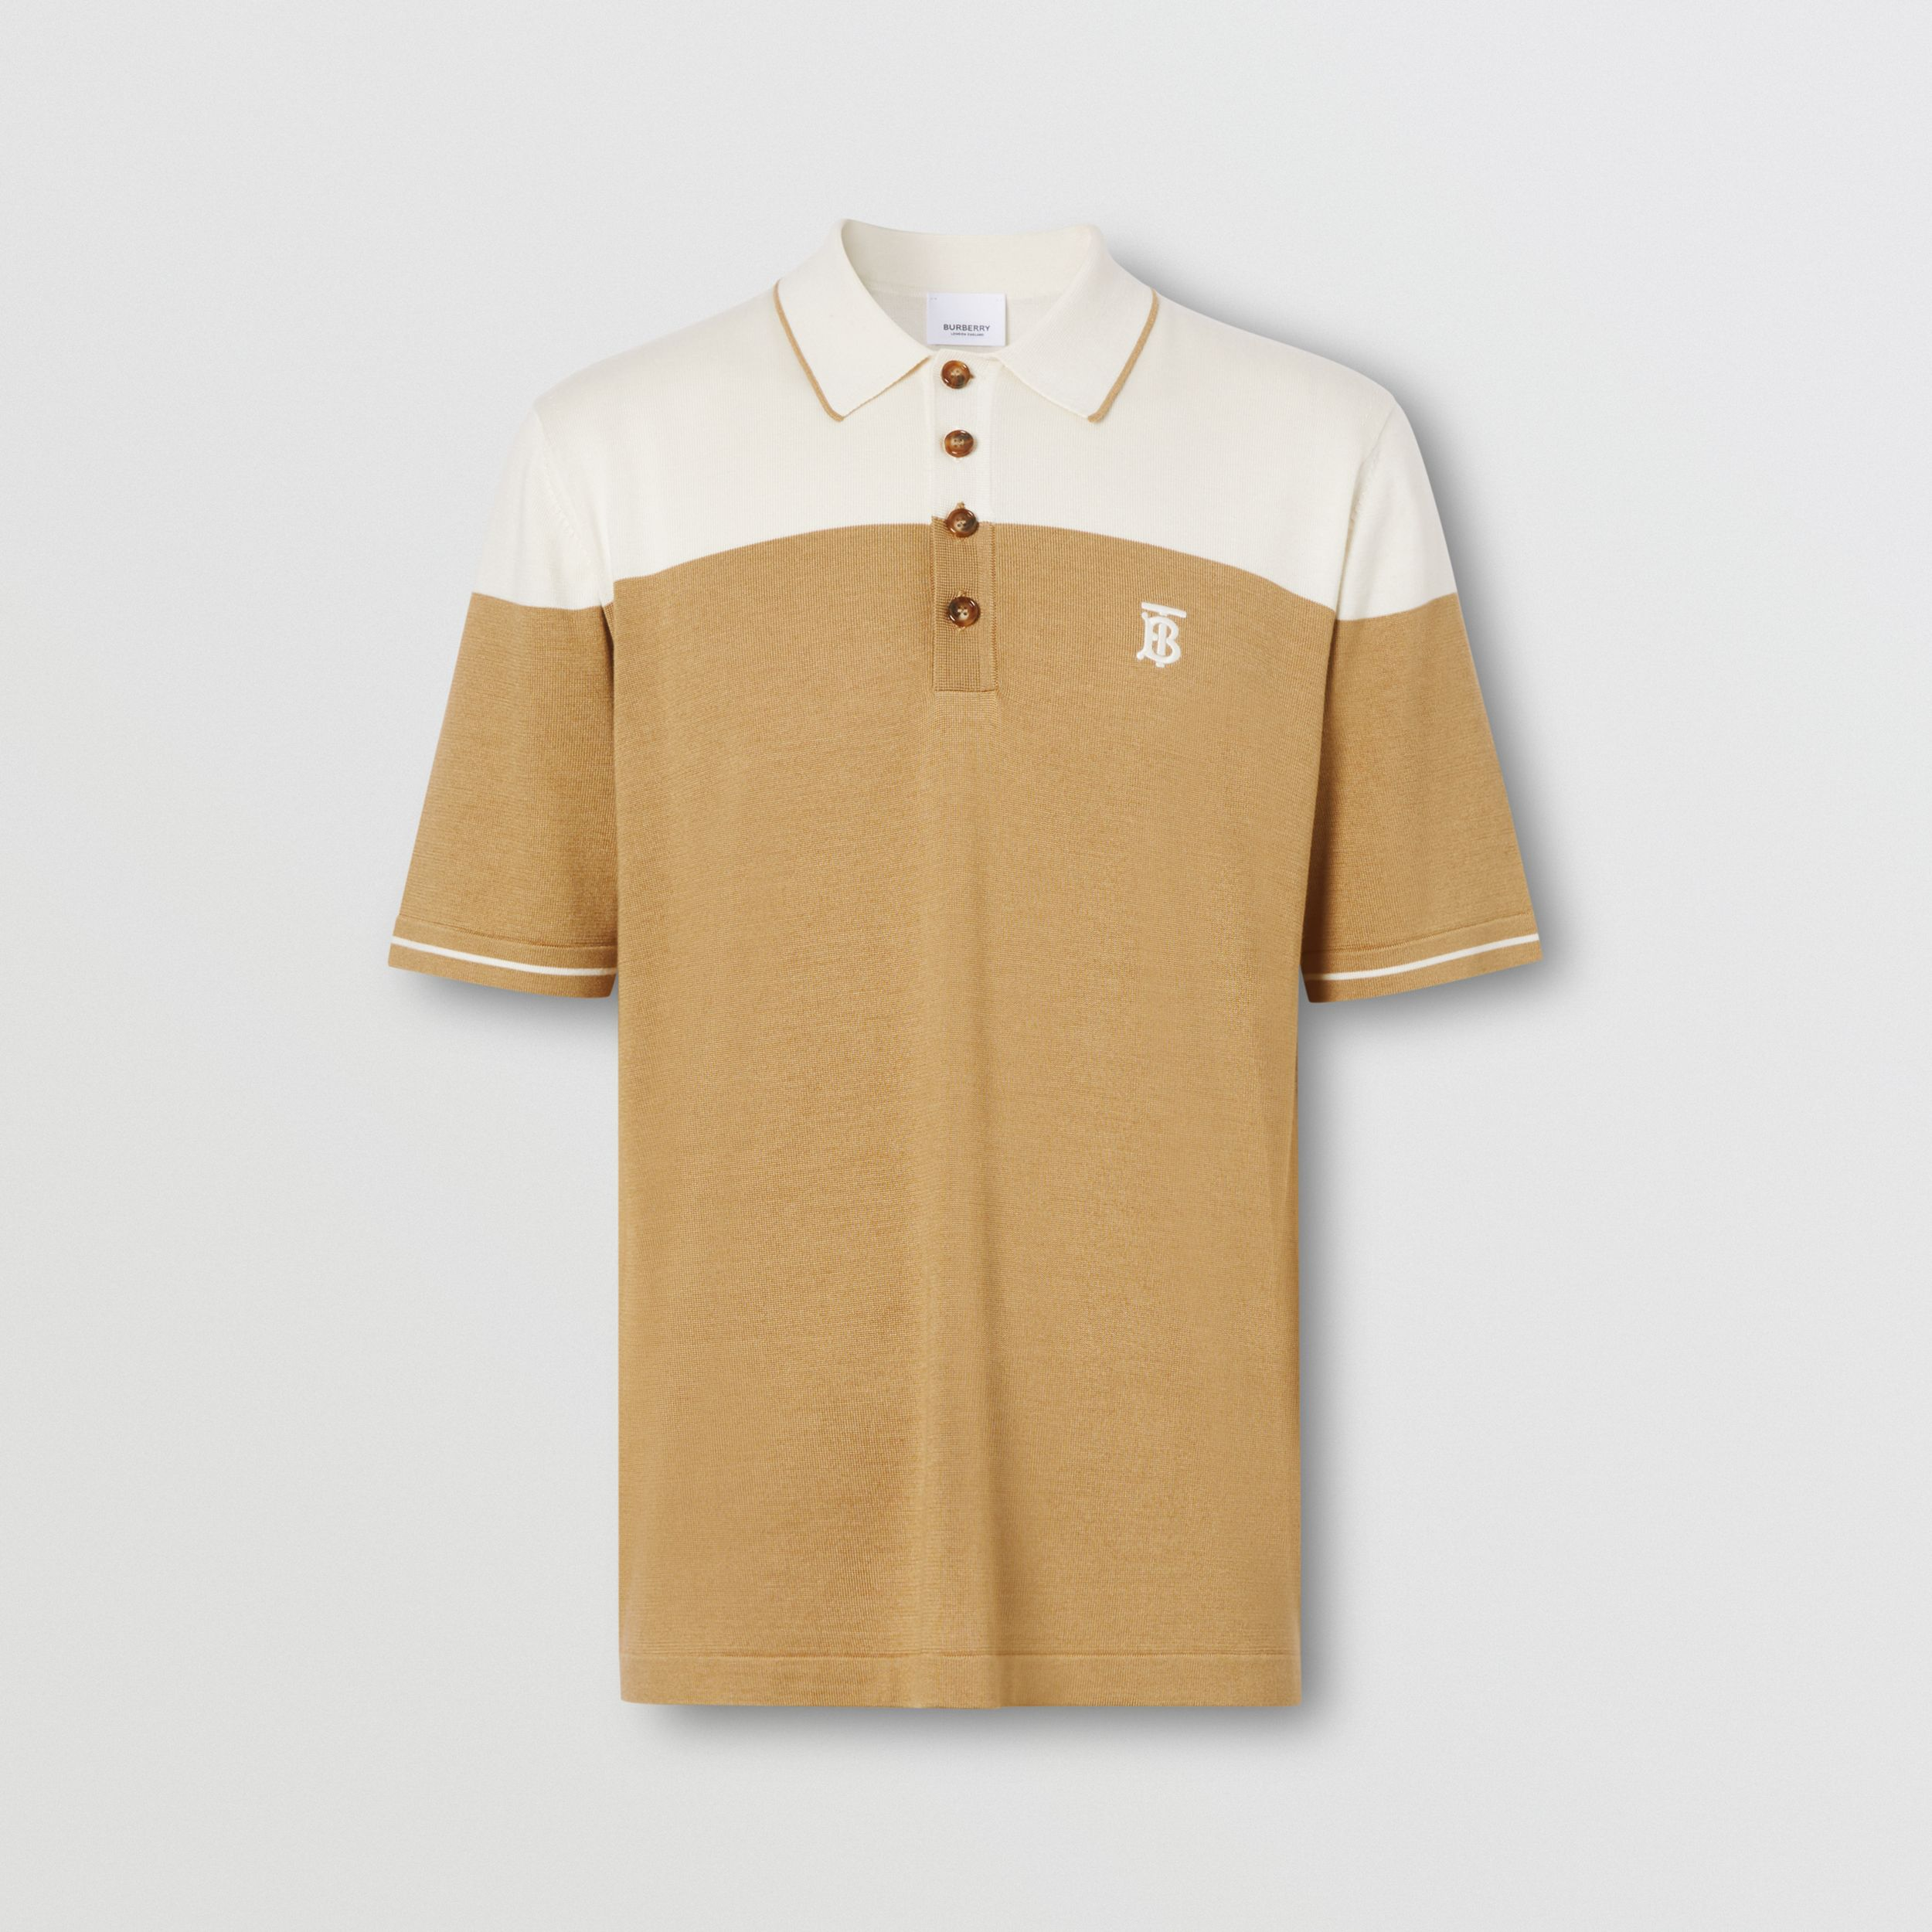 Monogram Motif Two-tone Silk Cashmere Polo Shirt in Archive Beige - Men | Burberry - 4